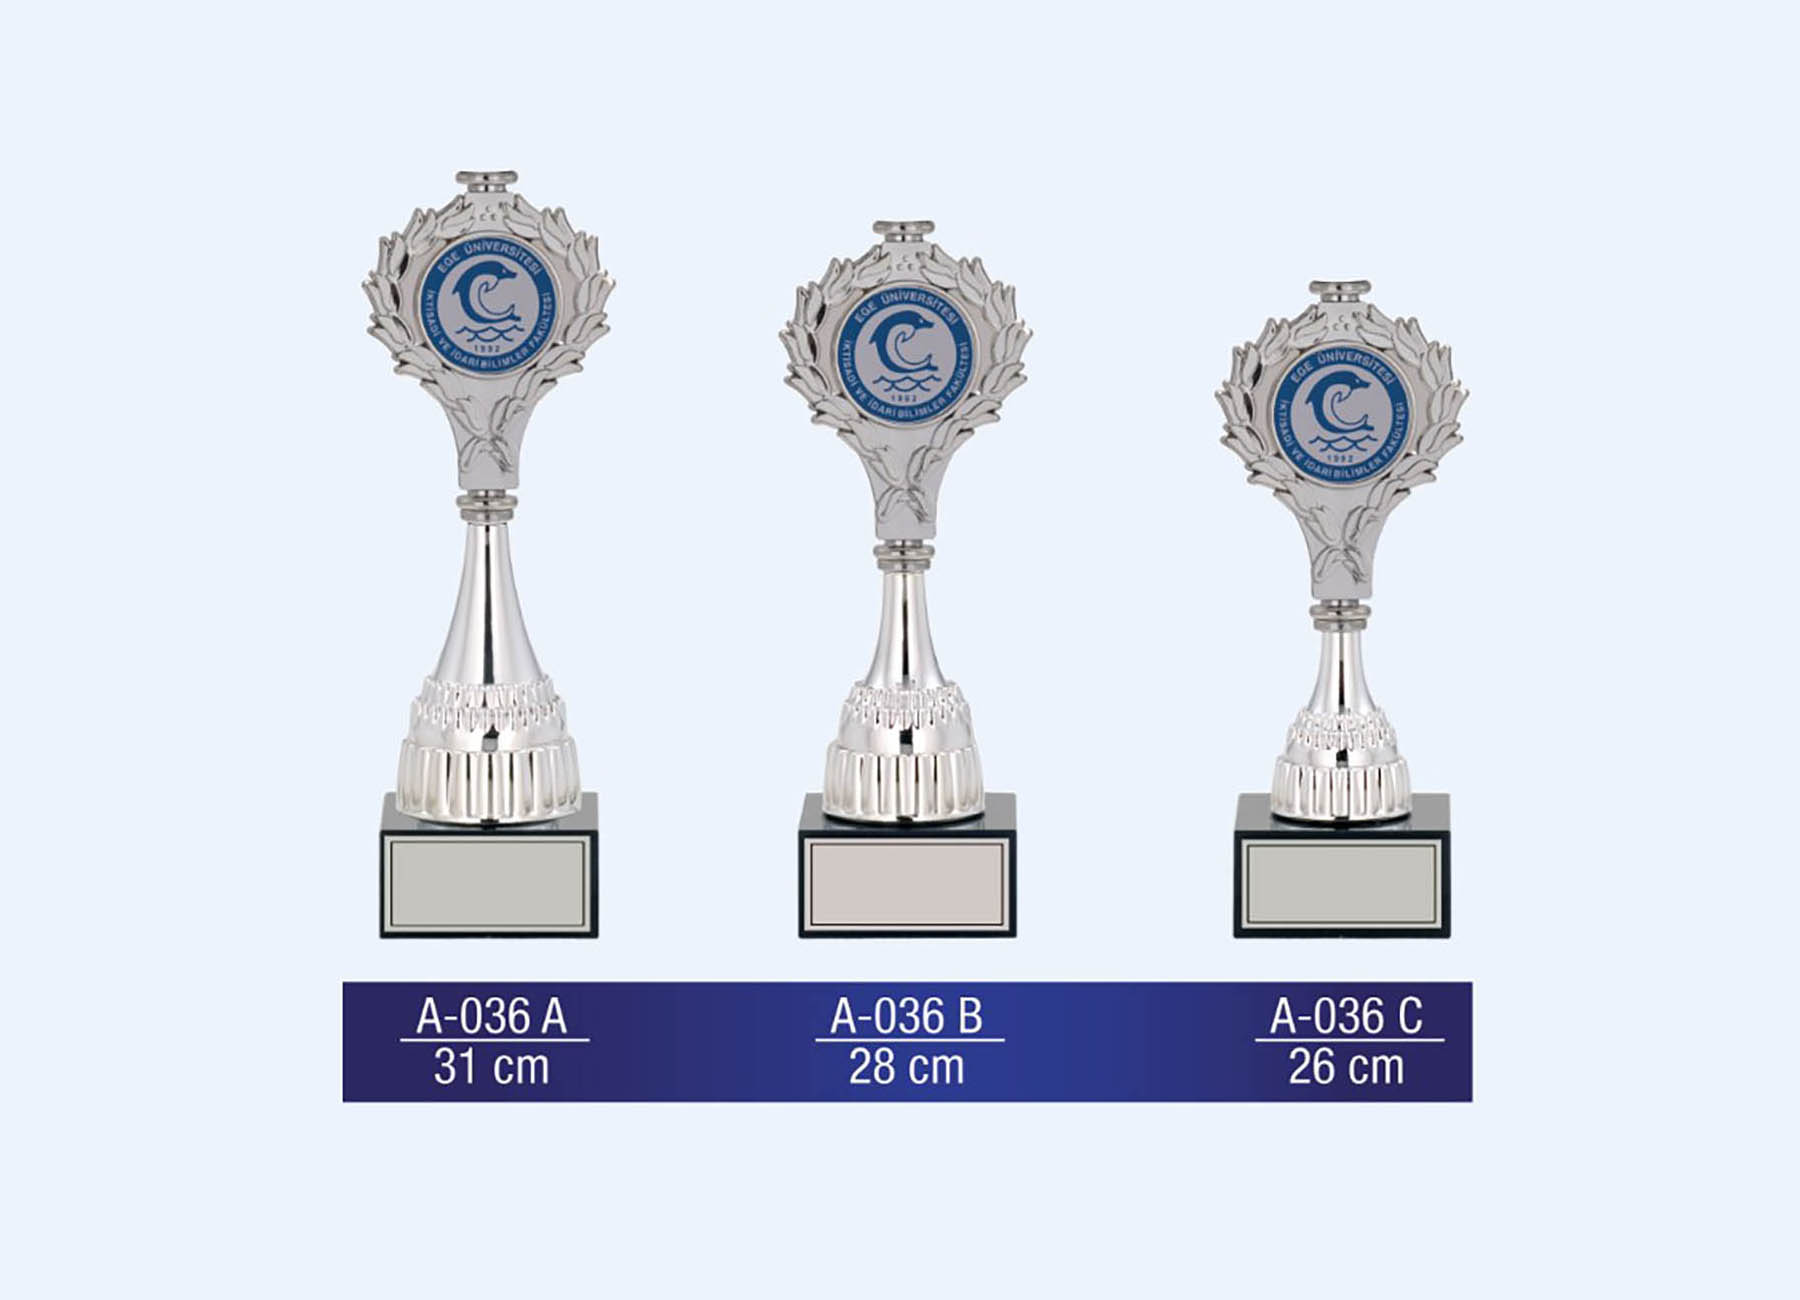 A-036 General Cups